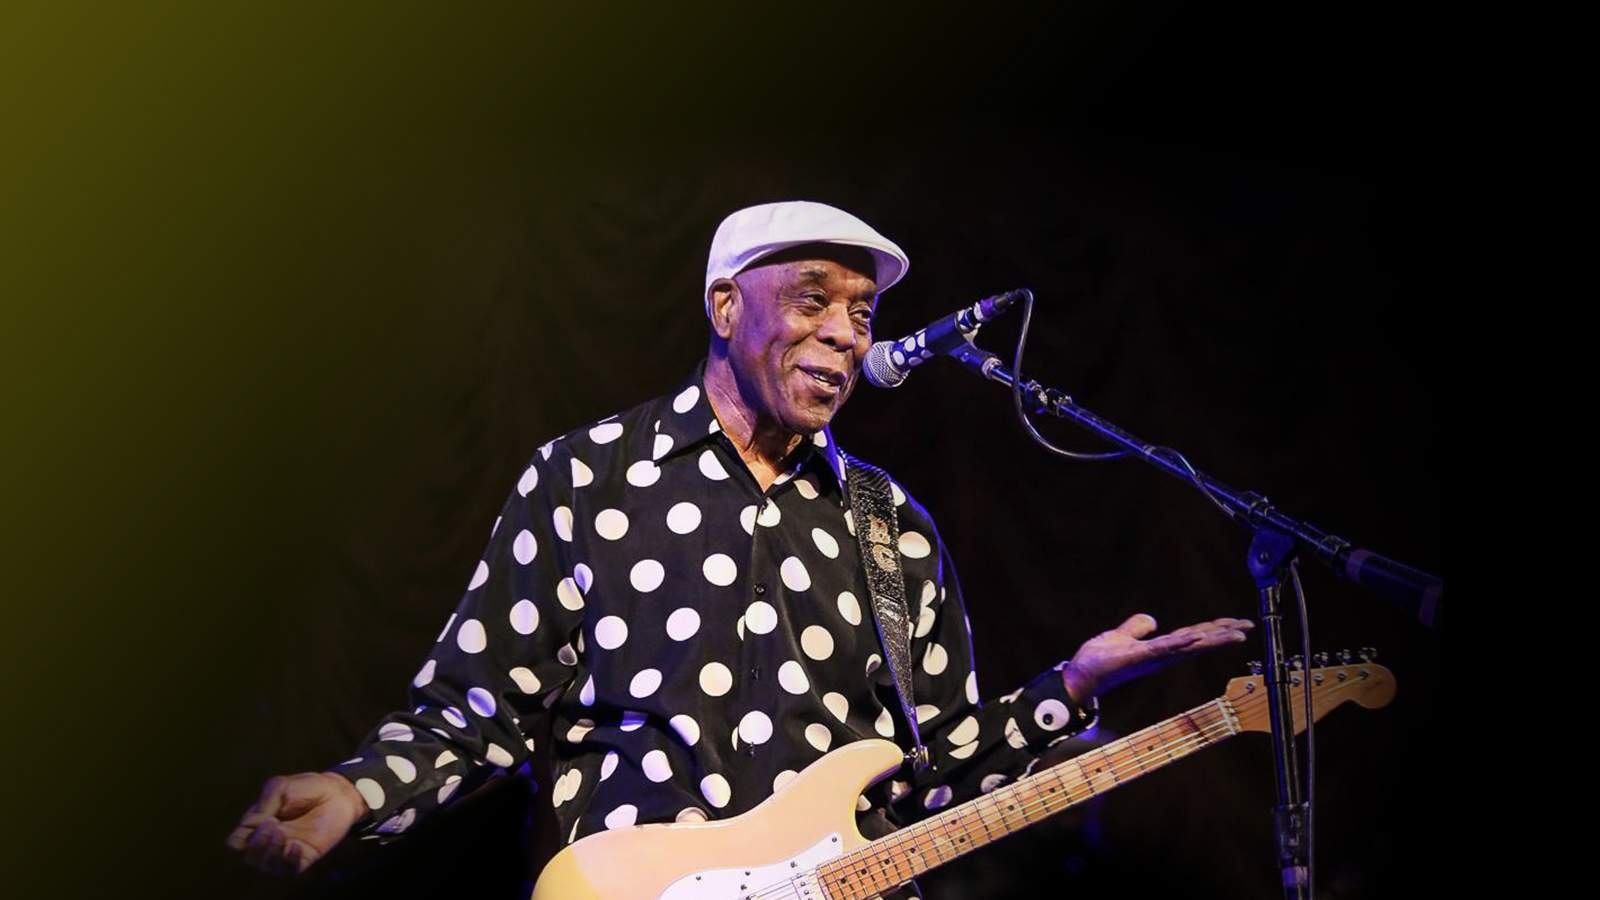 Buddy Guy (Rescheduled from 3/14/2020, 9/1/2020, 3/18/2021)